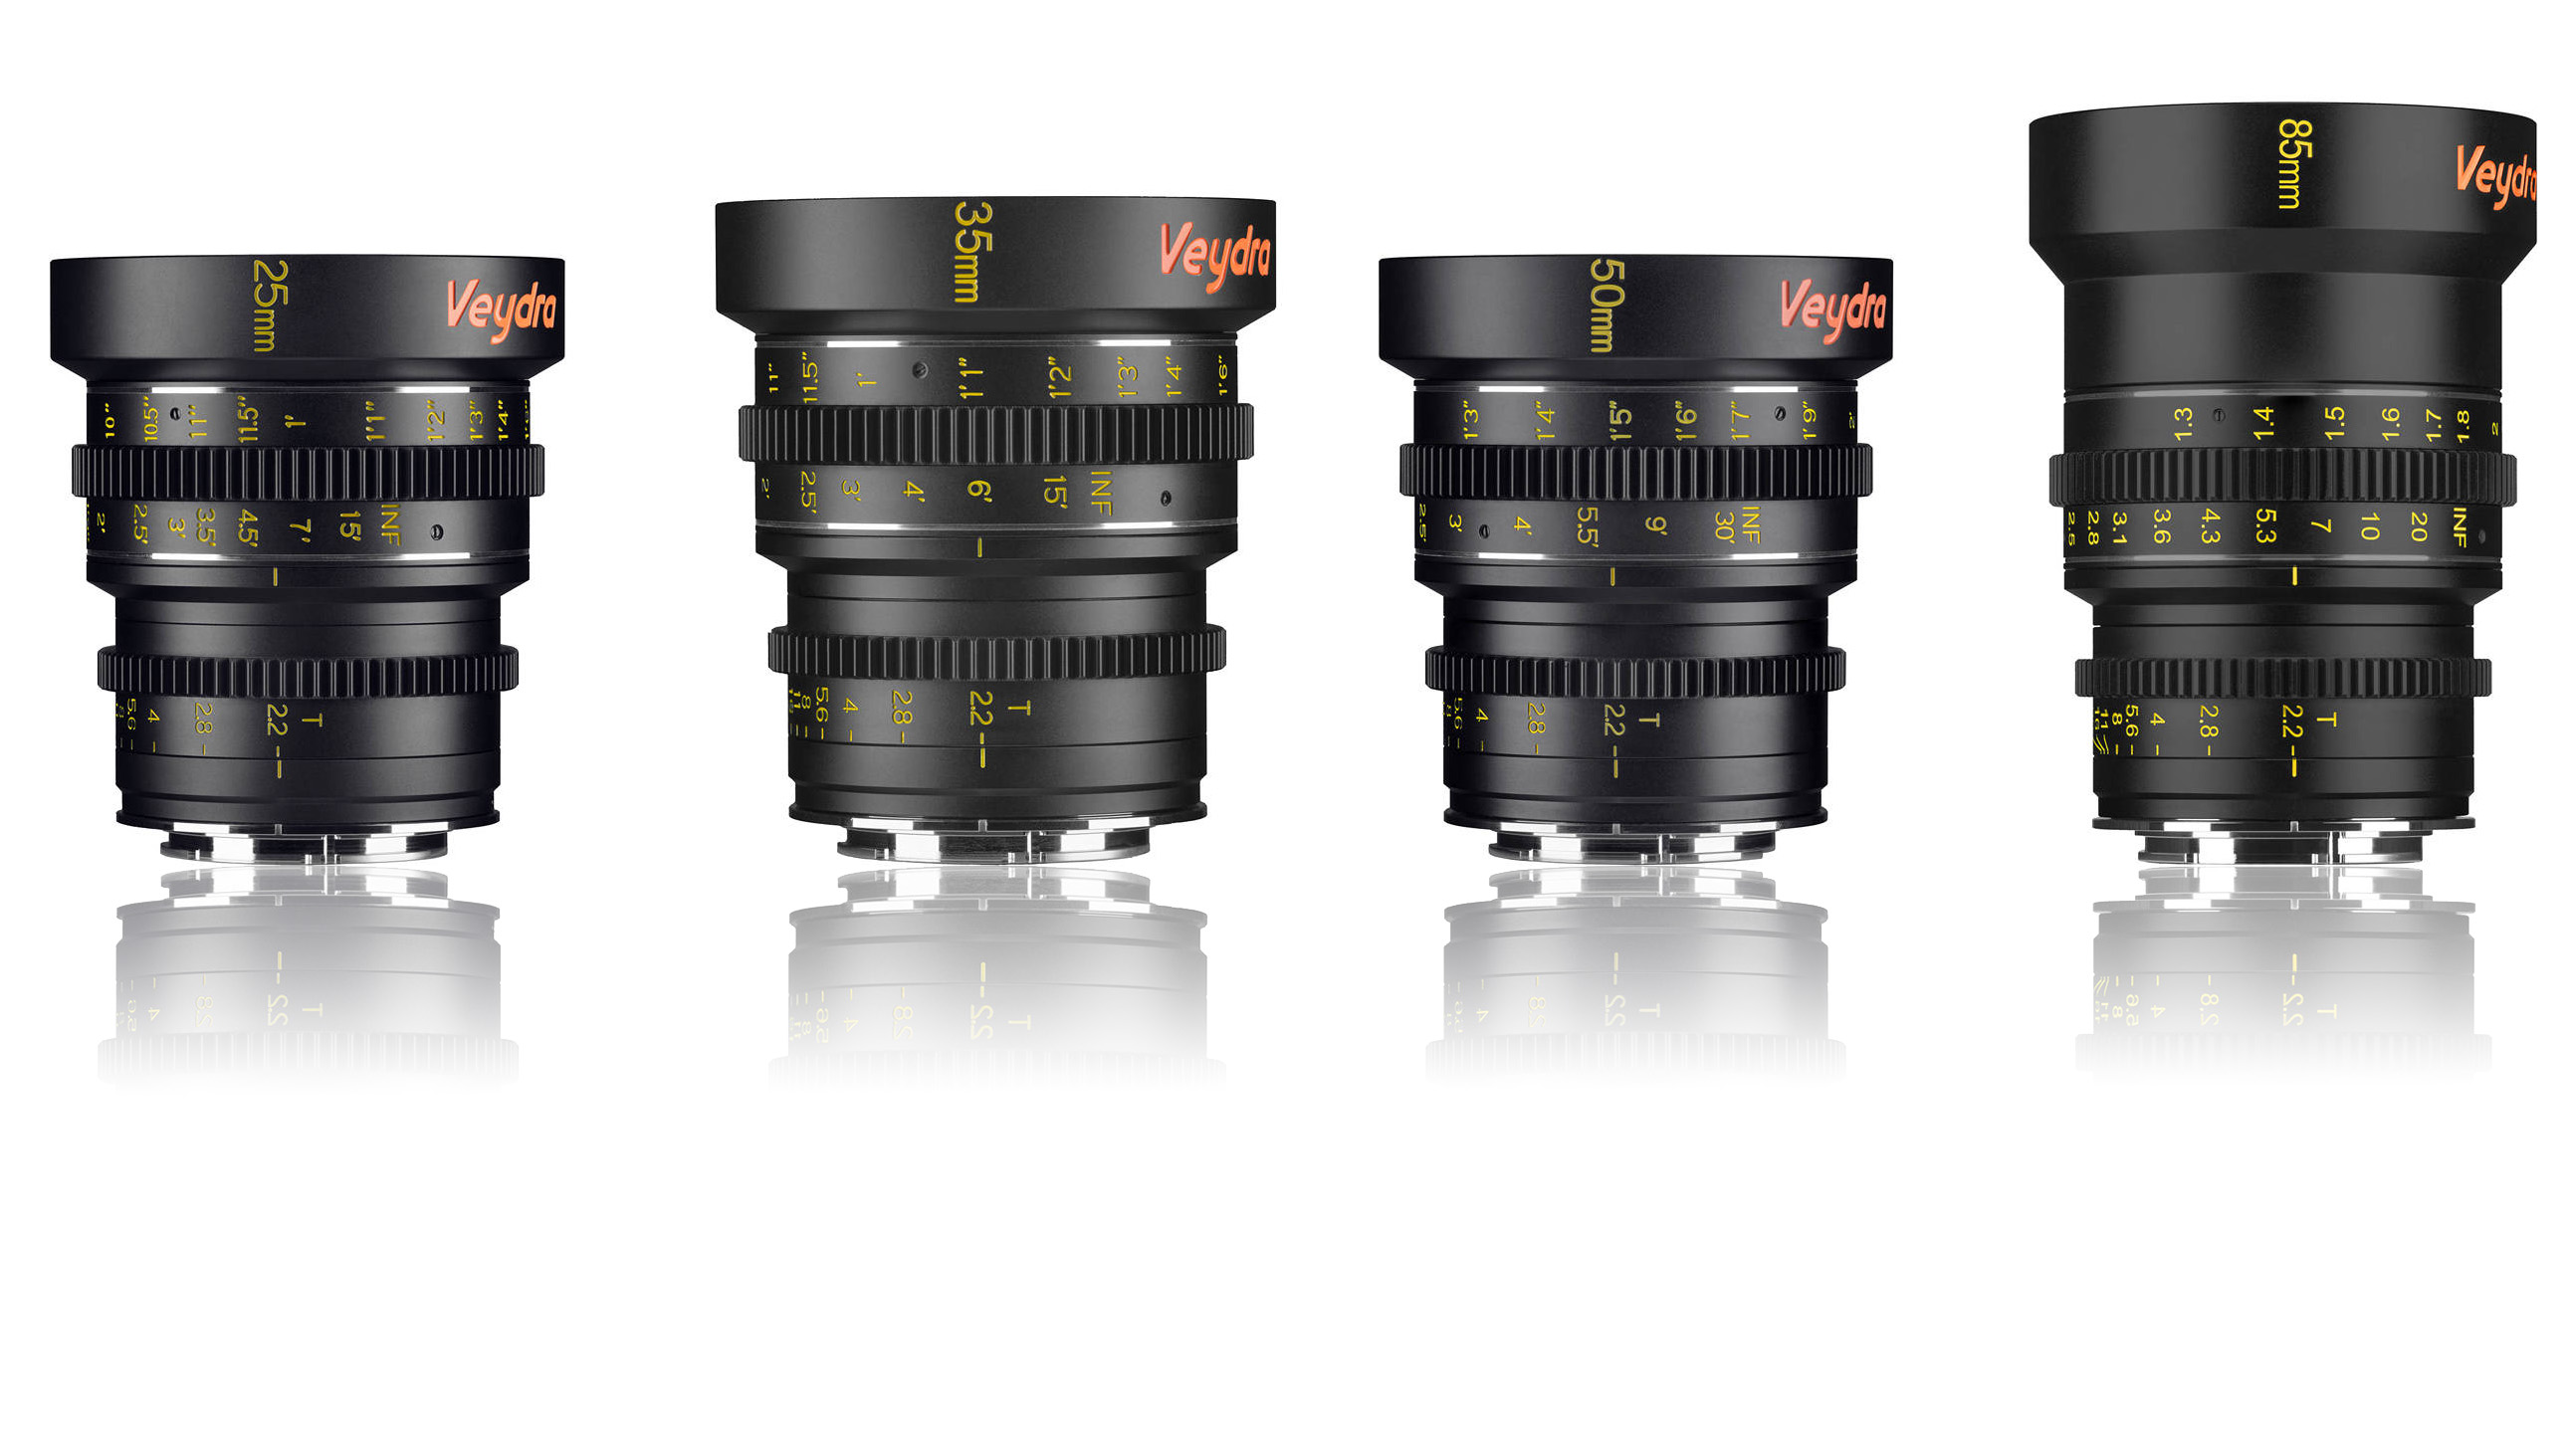 Lensrentals: Cheap Veydra Mini Prime lenses are \'optically excellent ...